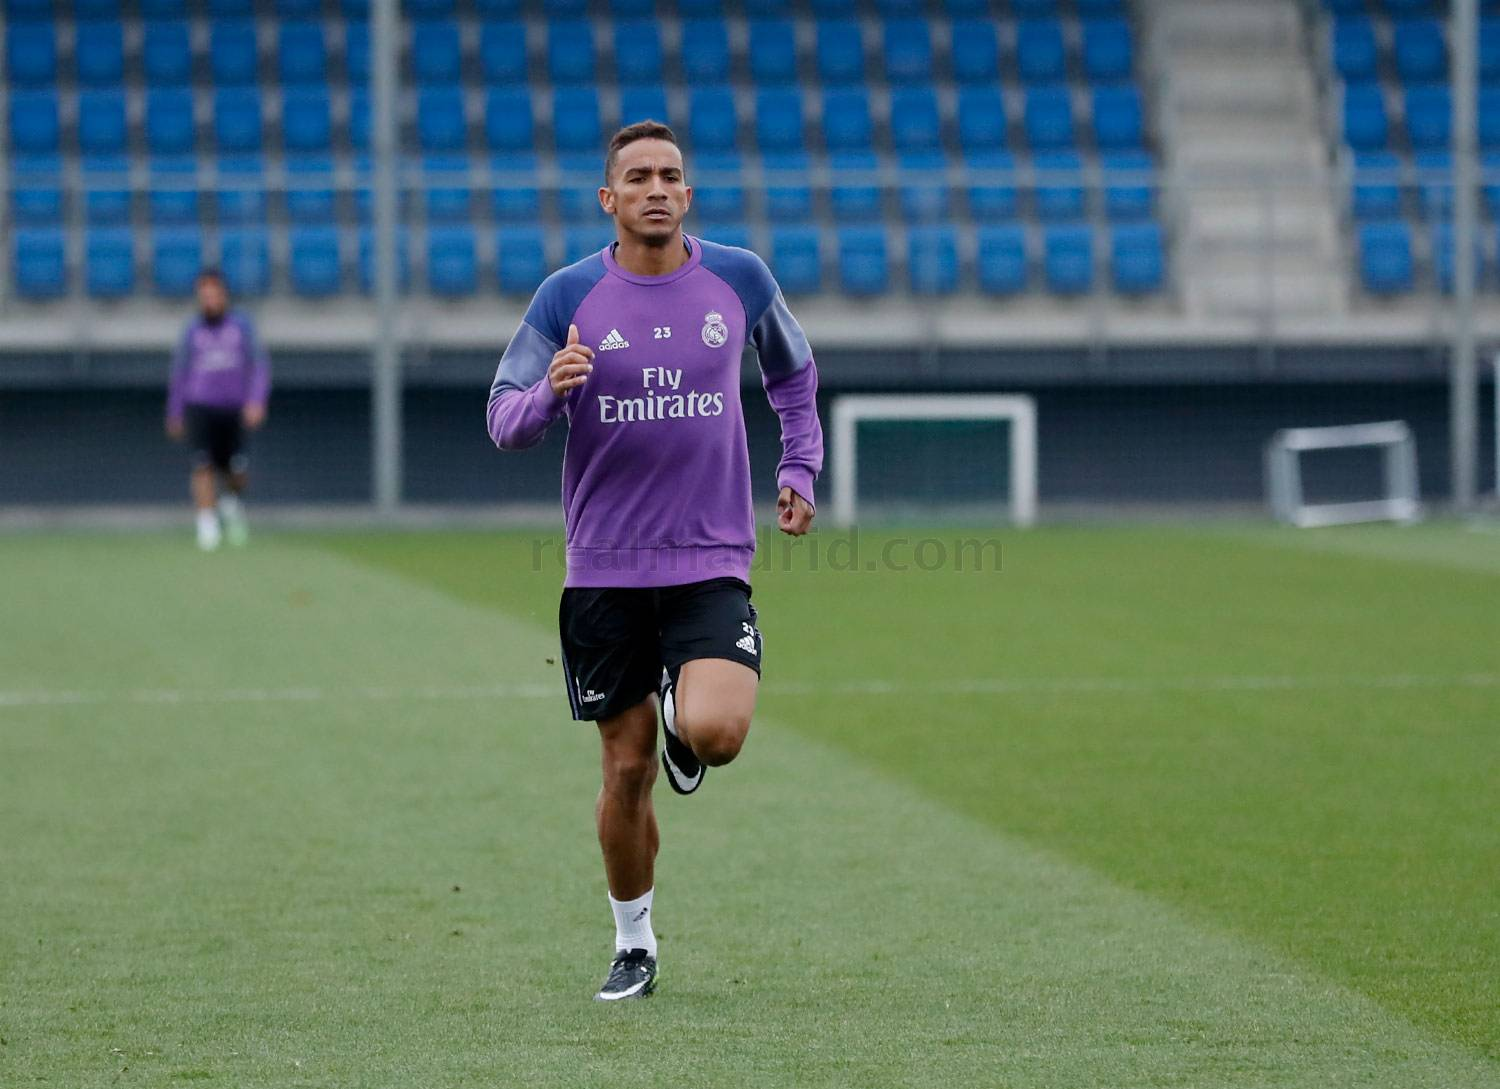 Real Madrid - Entrenamiento del Real Madrid - 01-12-2016